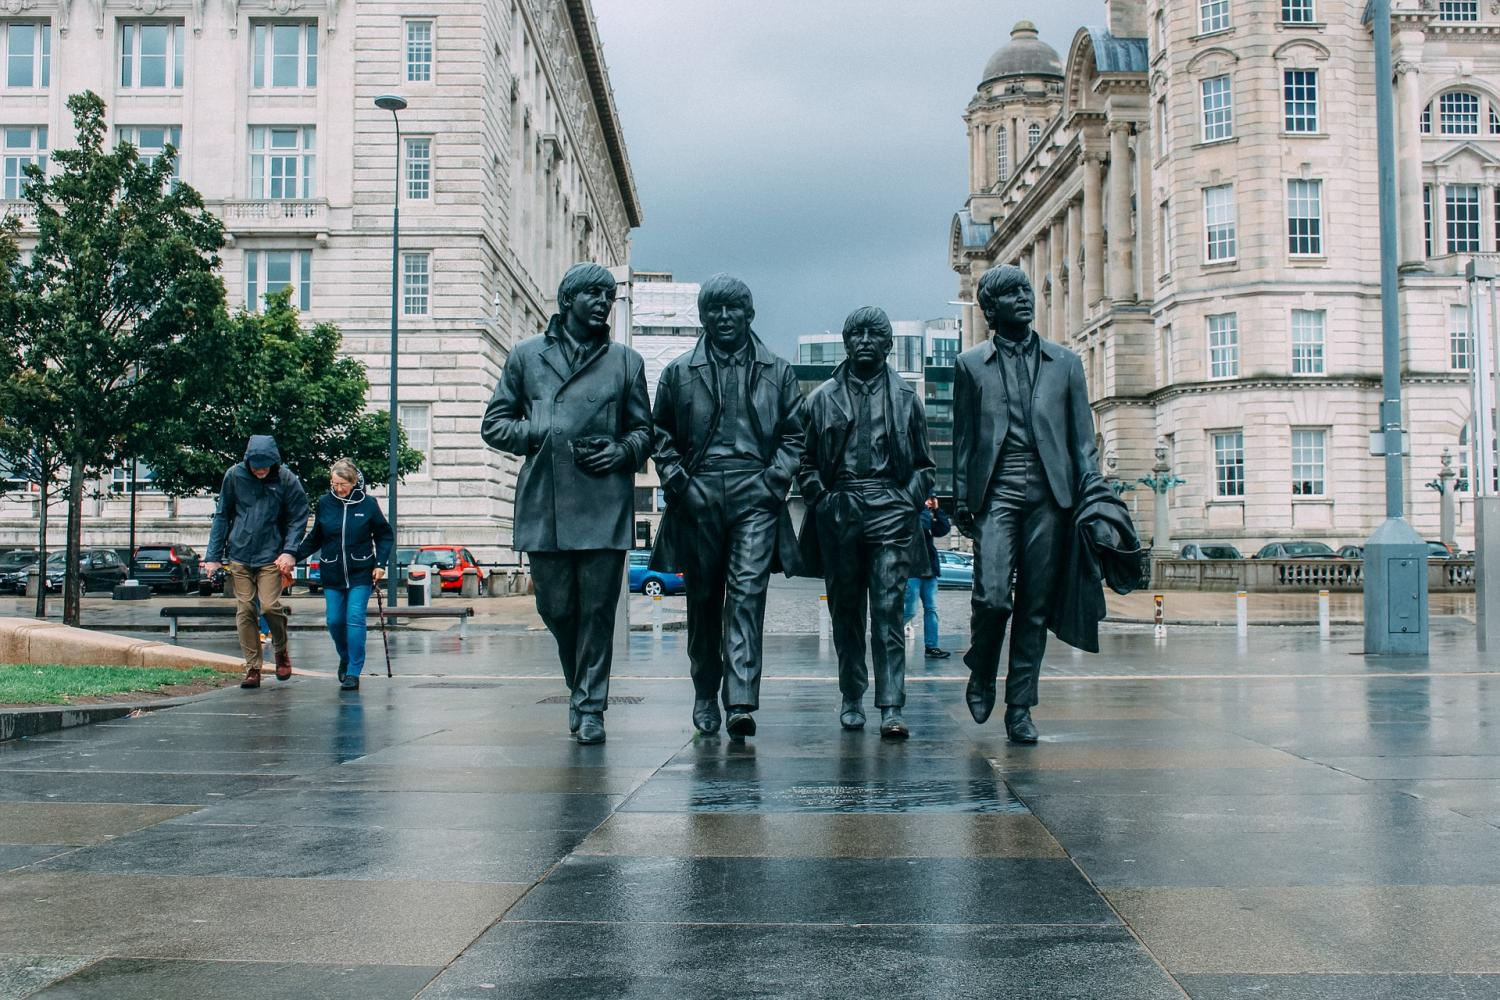 The Beatles and Day Trip to Liverpool